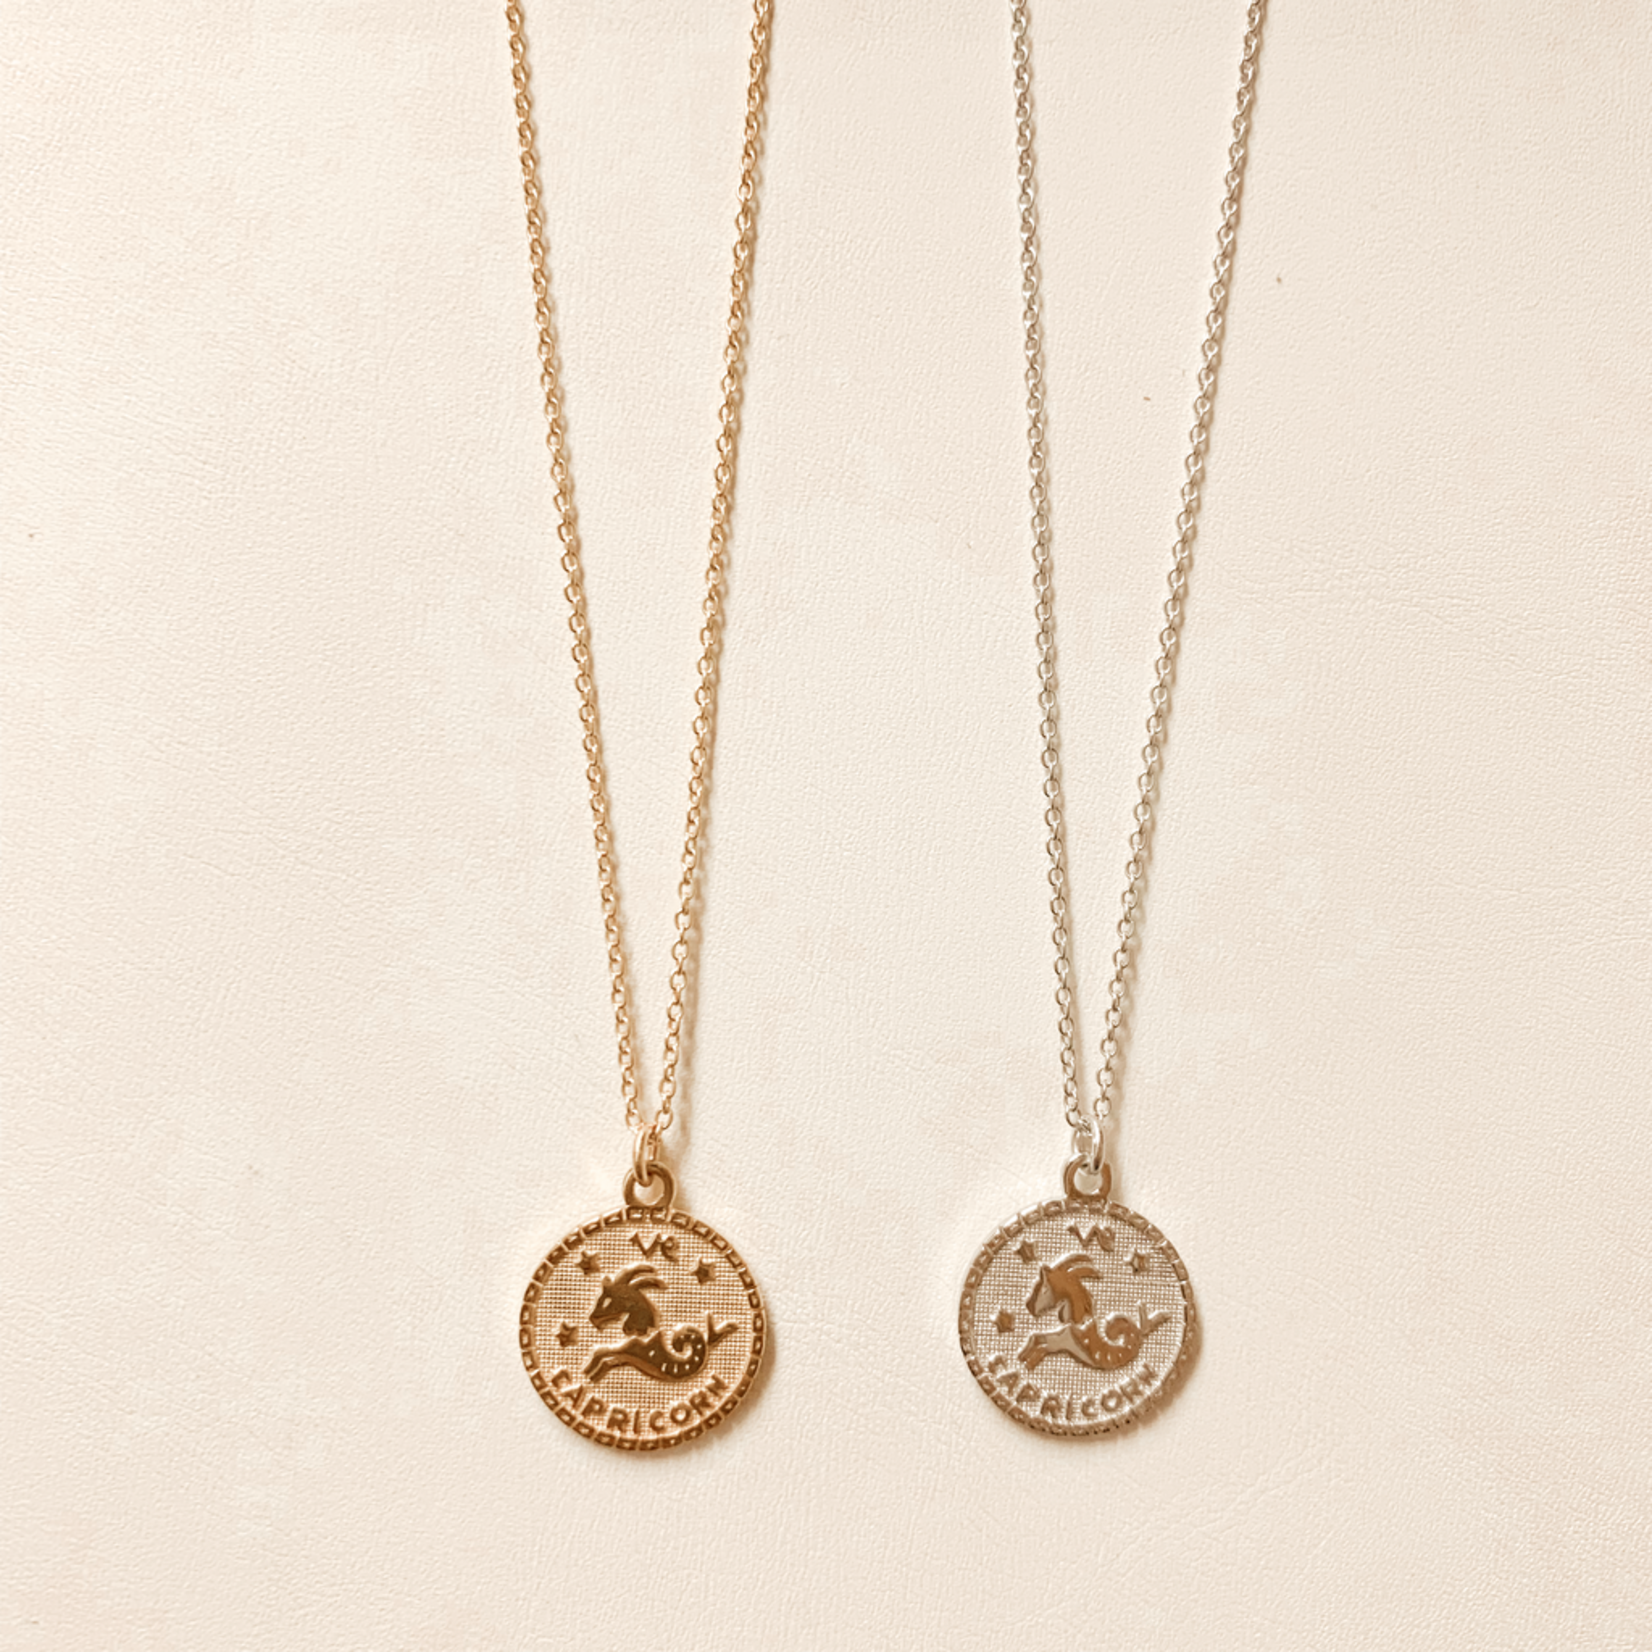 Capricorn In the Stars Necklace